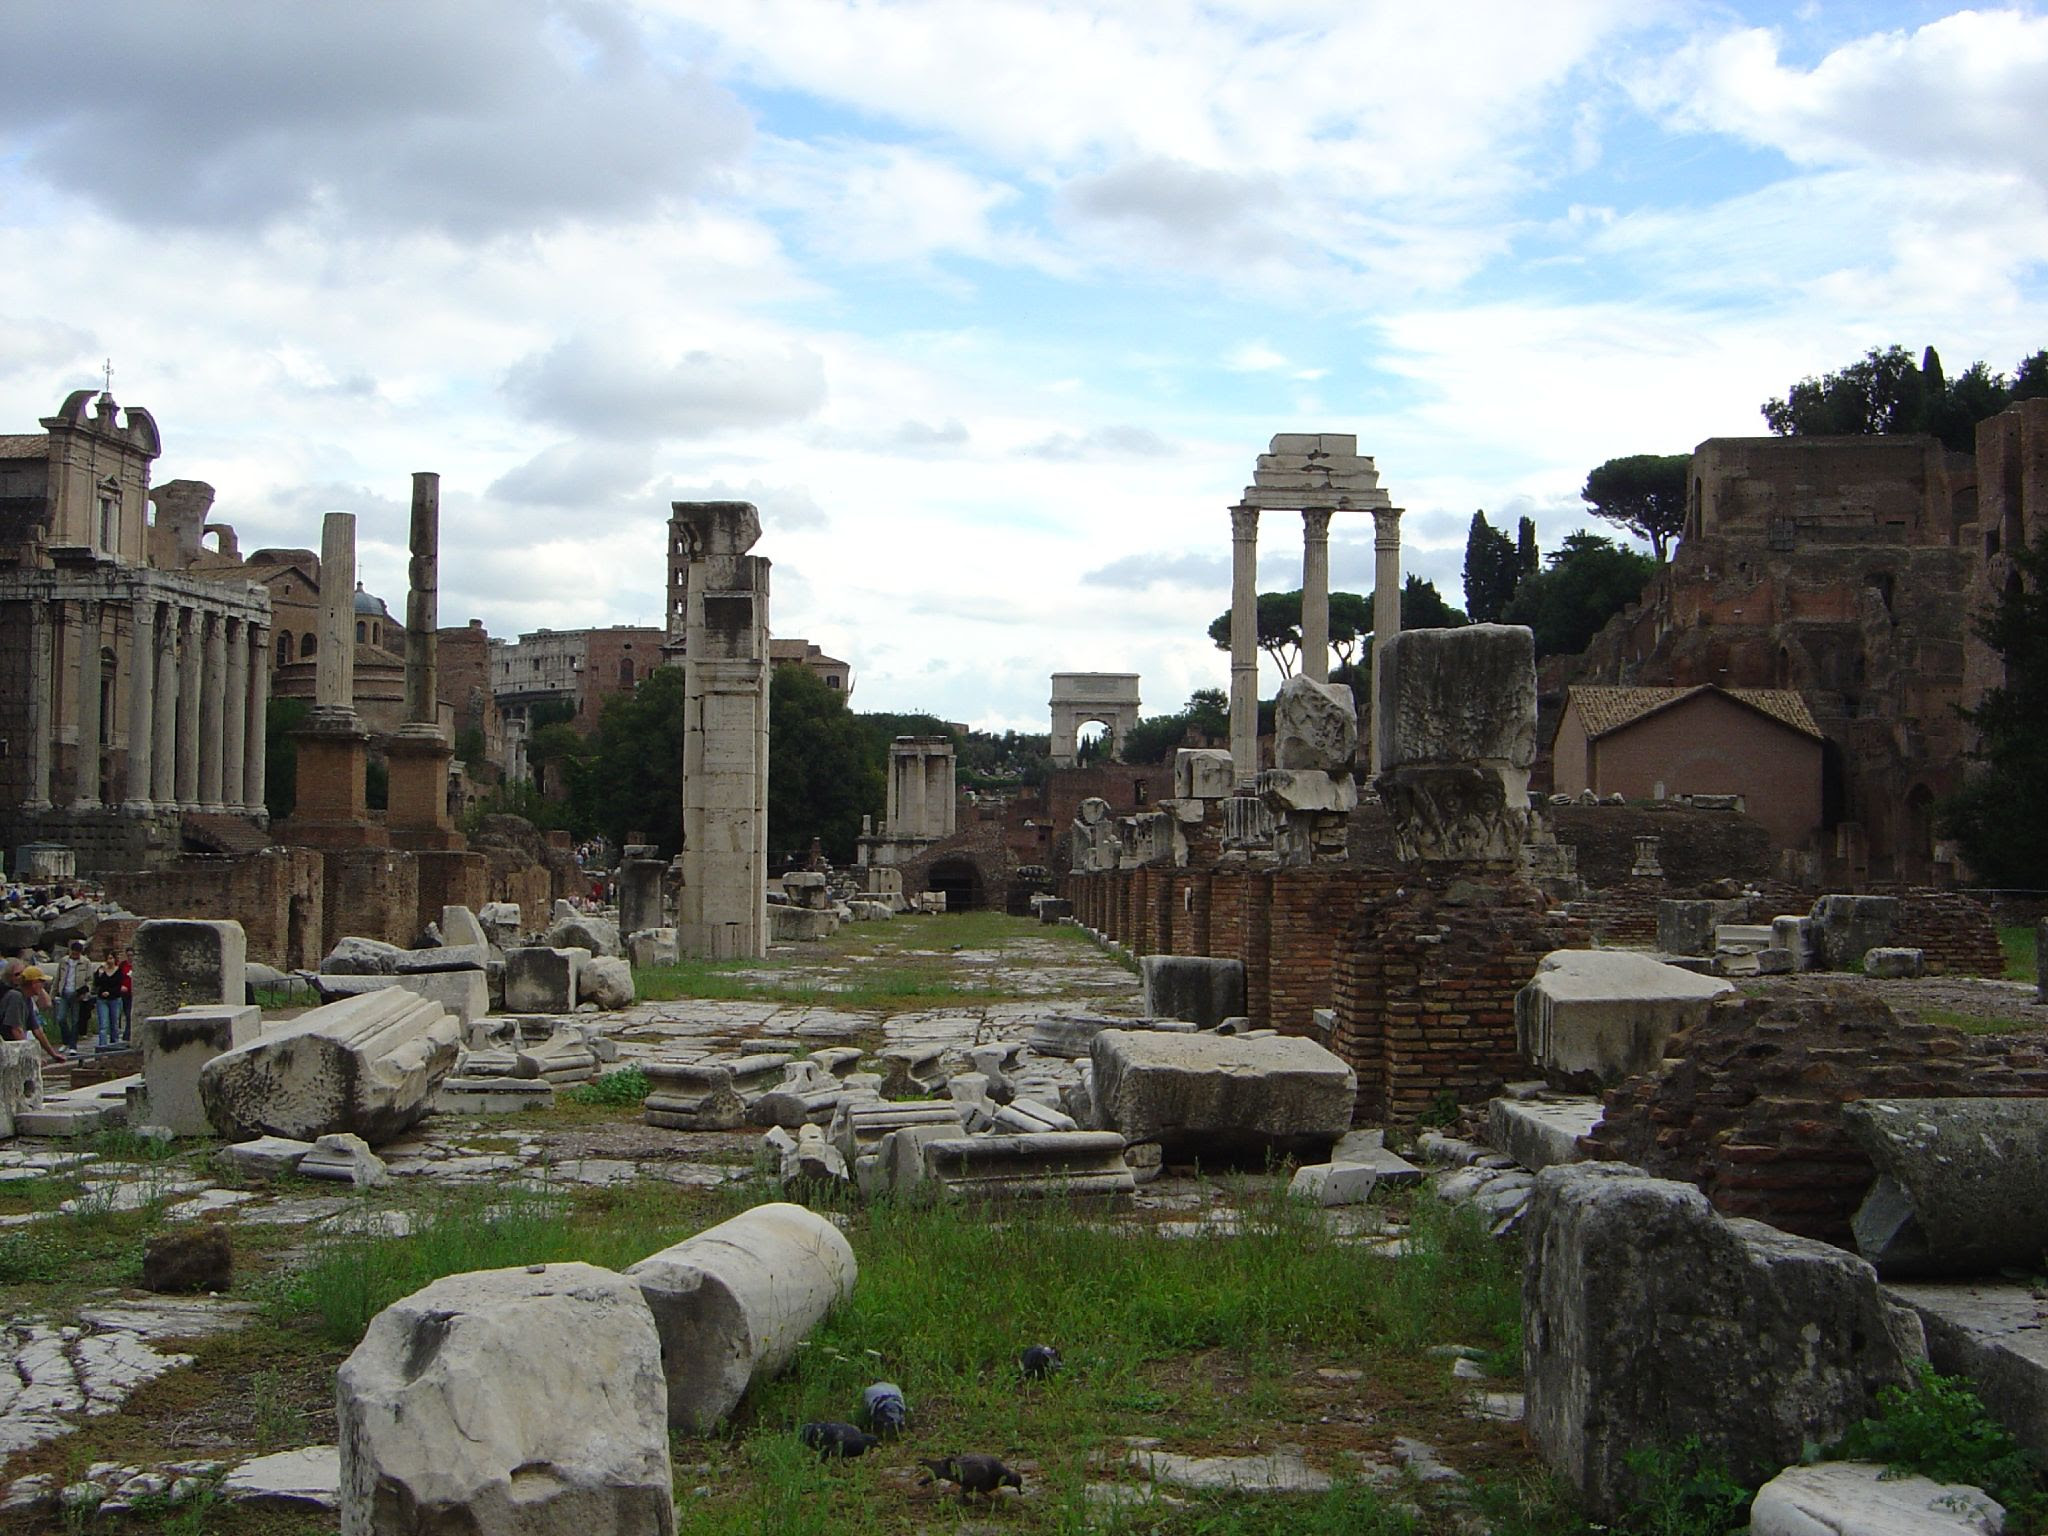 http://upload.wikimedia.org/wikipedia/commons/b/b1/Ruins_of_Roman_Forum.jpg